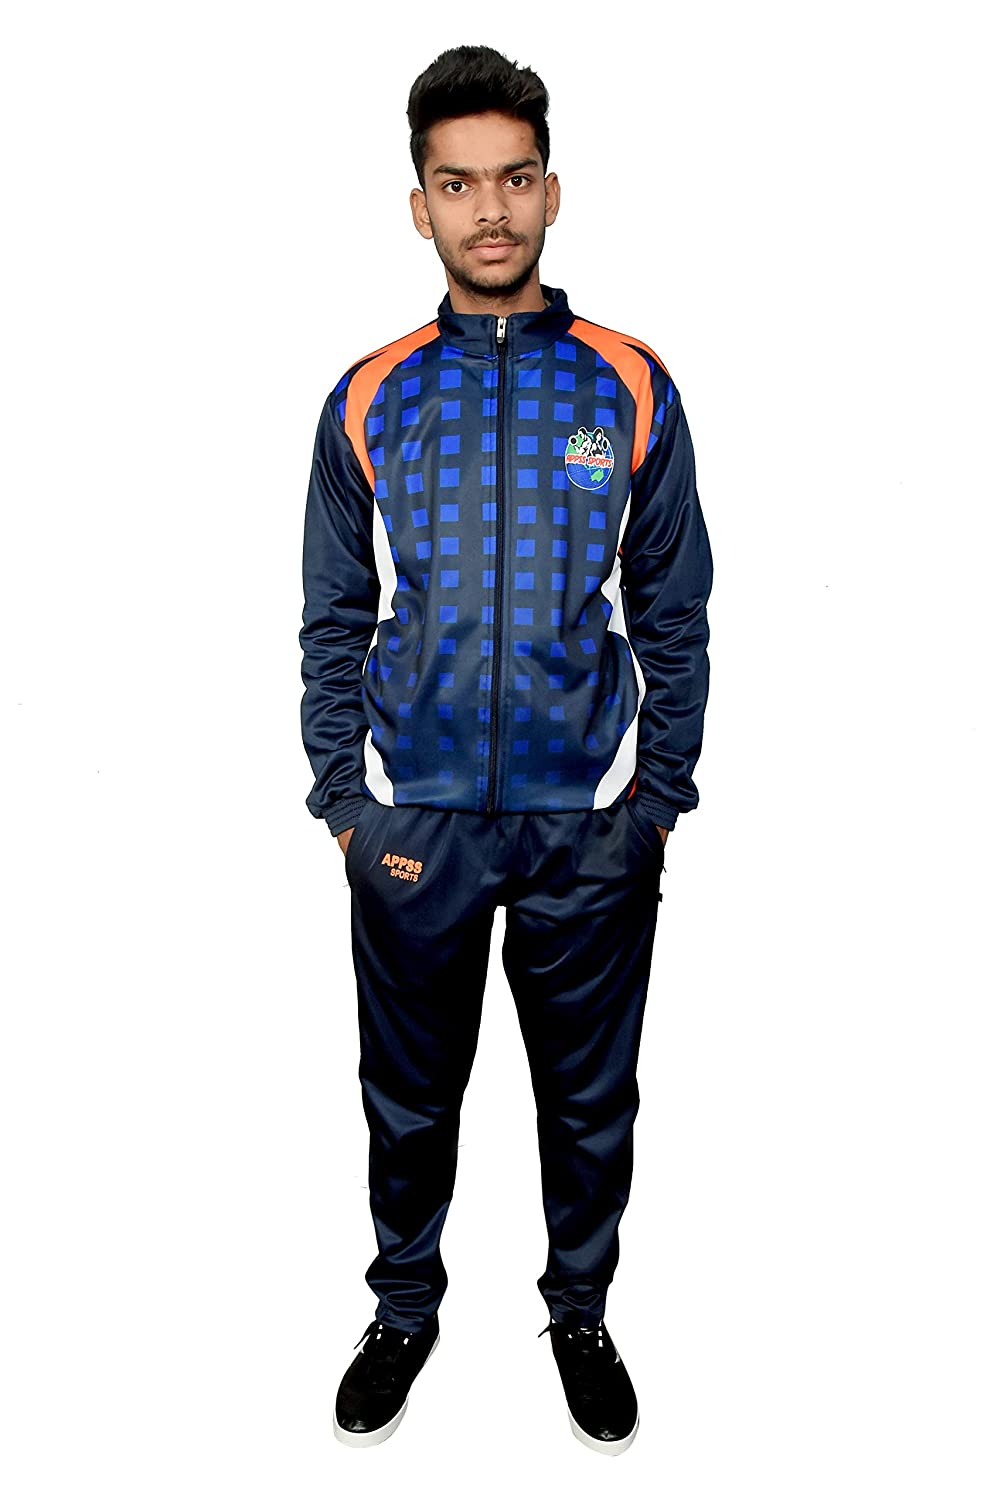 708fddc7caa6f APPSS Sports Printed Tracksuit for Men, Track Suits for Mens ...